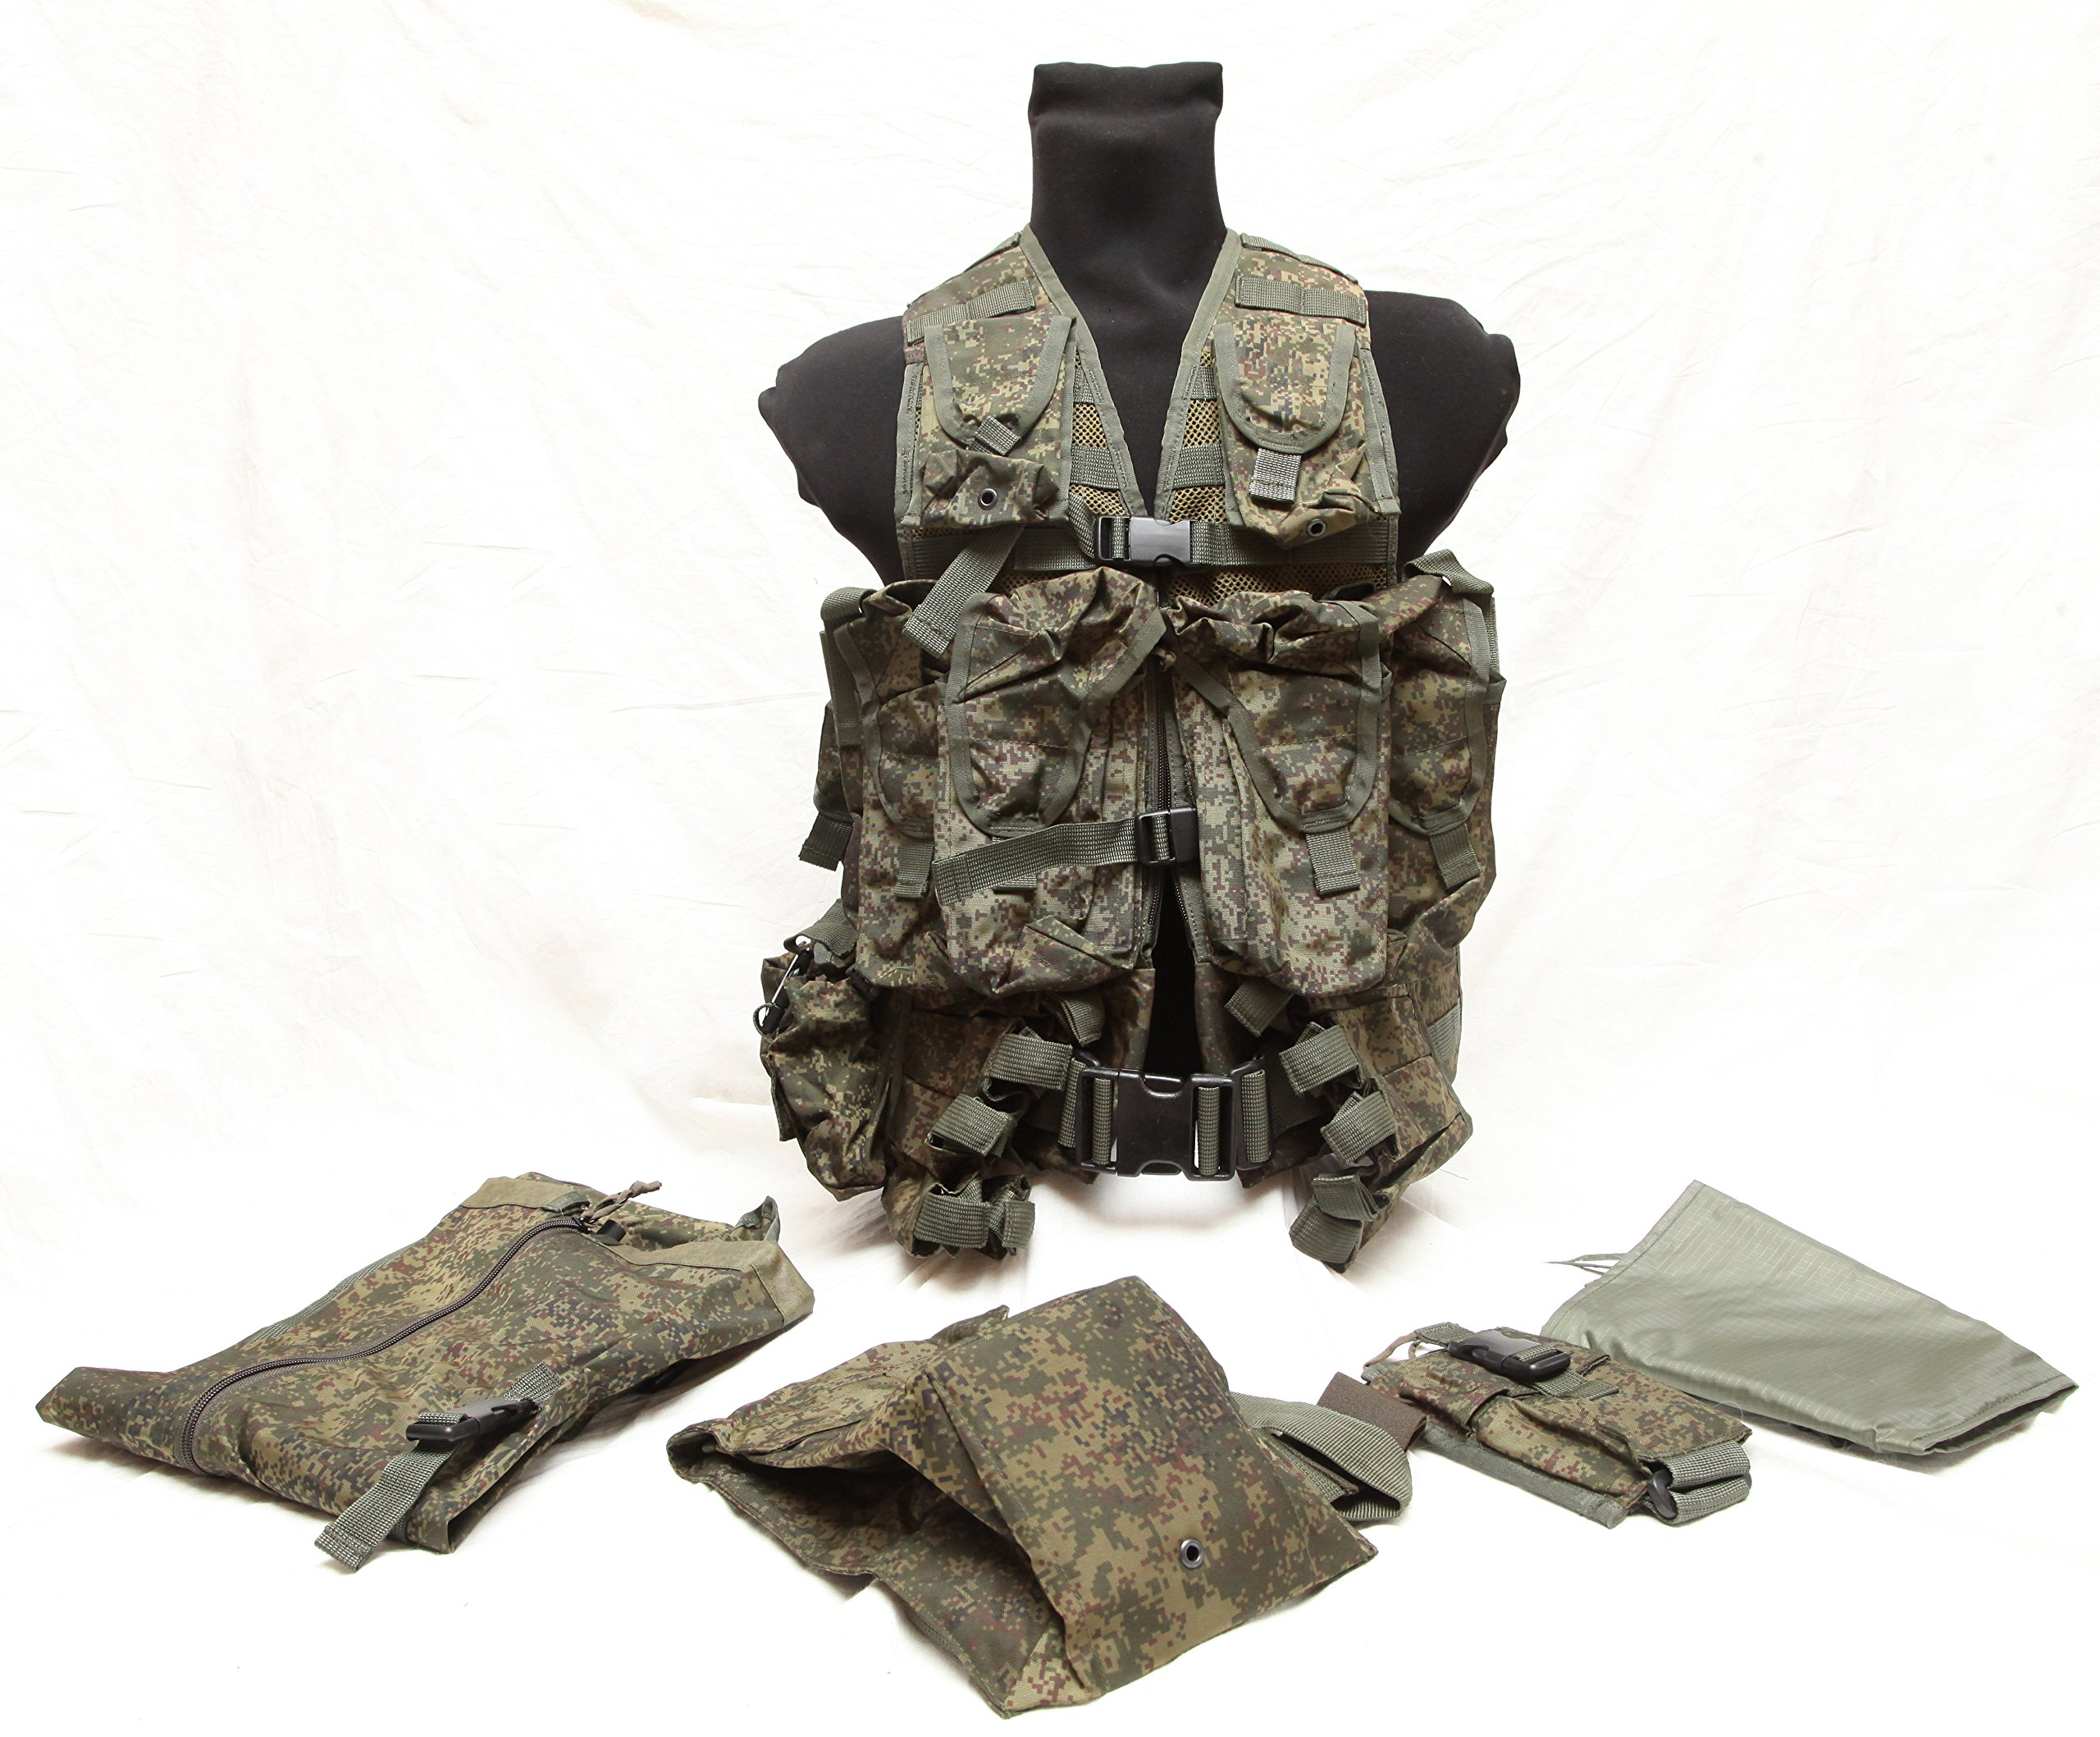 Russian army genuine 6sh117 modular load bearing tactical vest by Zuratkul